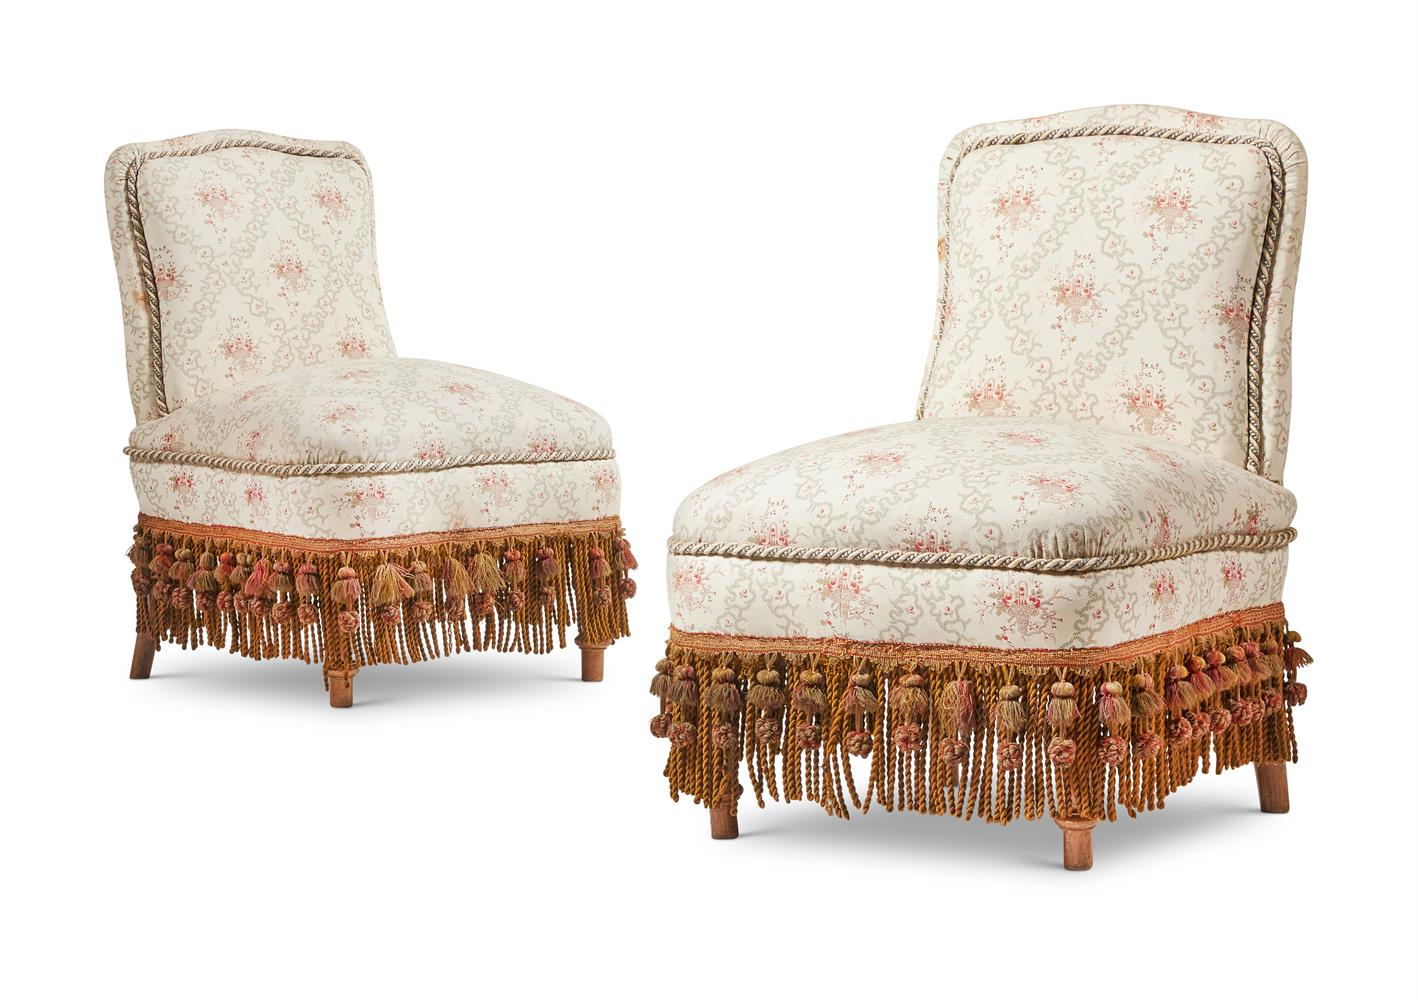 A PAIR OF VICTORIAN LOW UPHOLSTERED SIDE CHAIRS